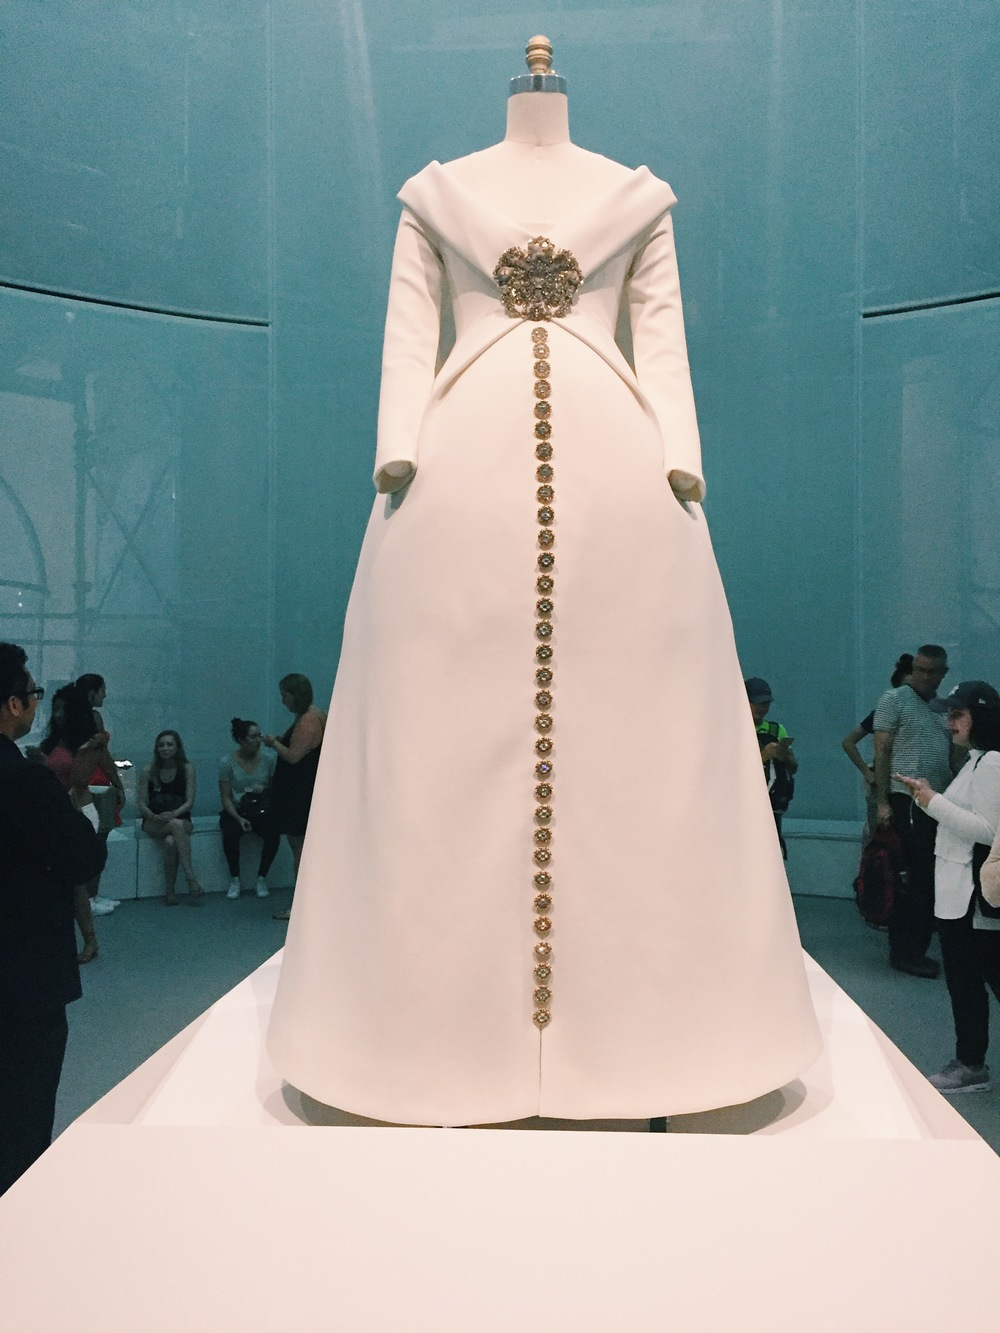 House of Chanel Wedding Ensemble